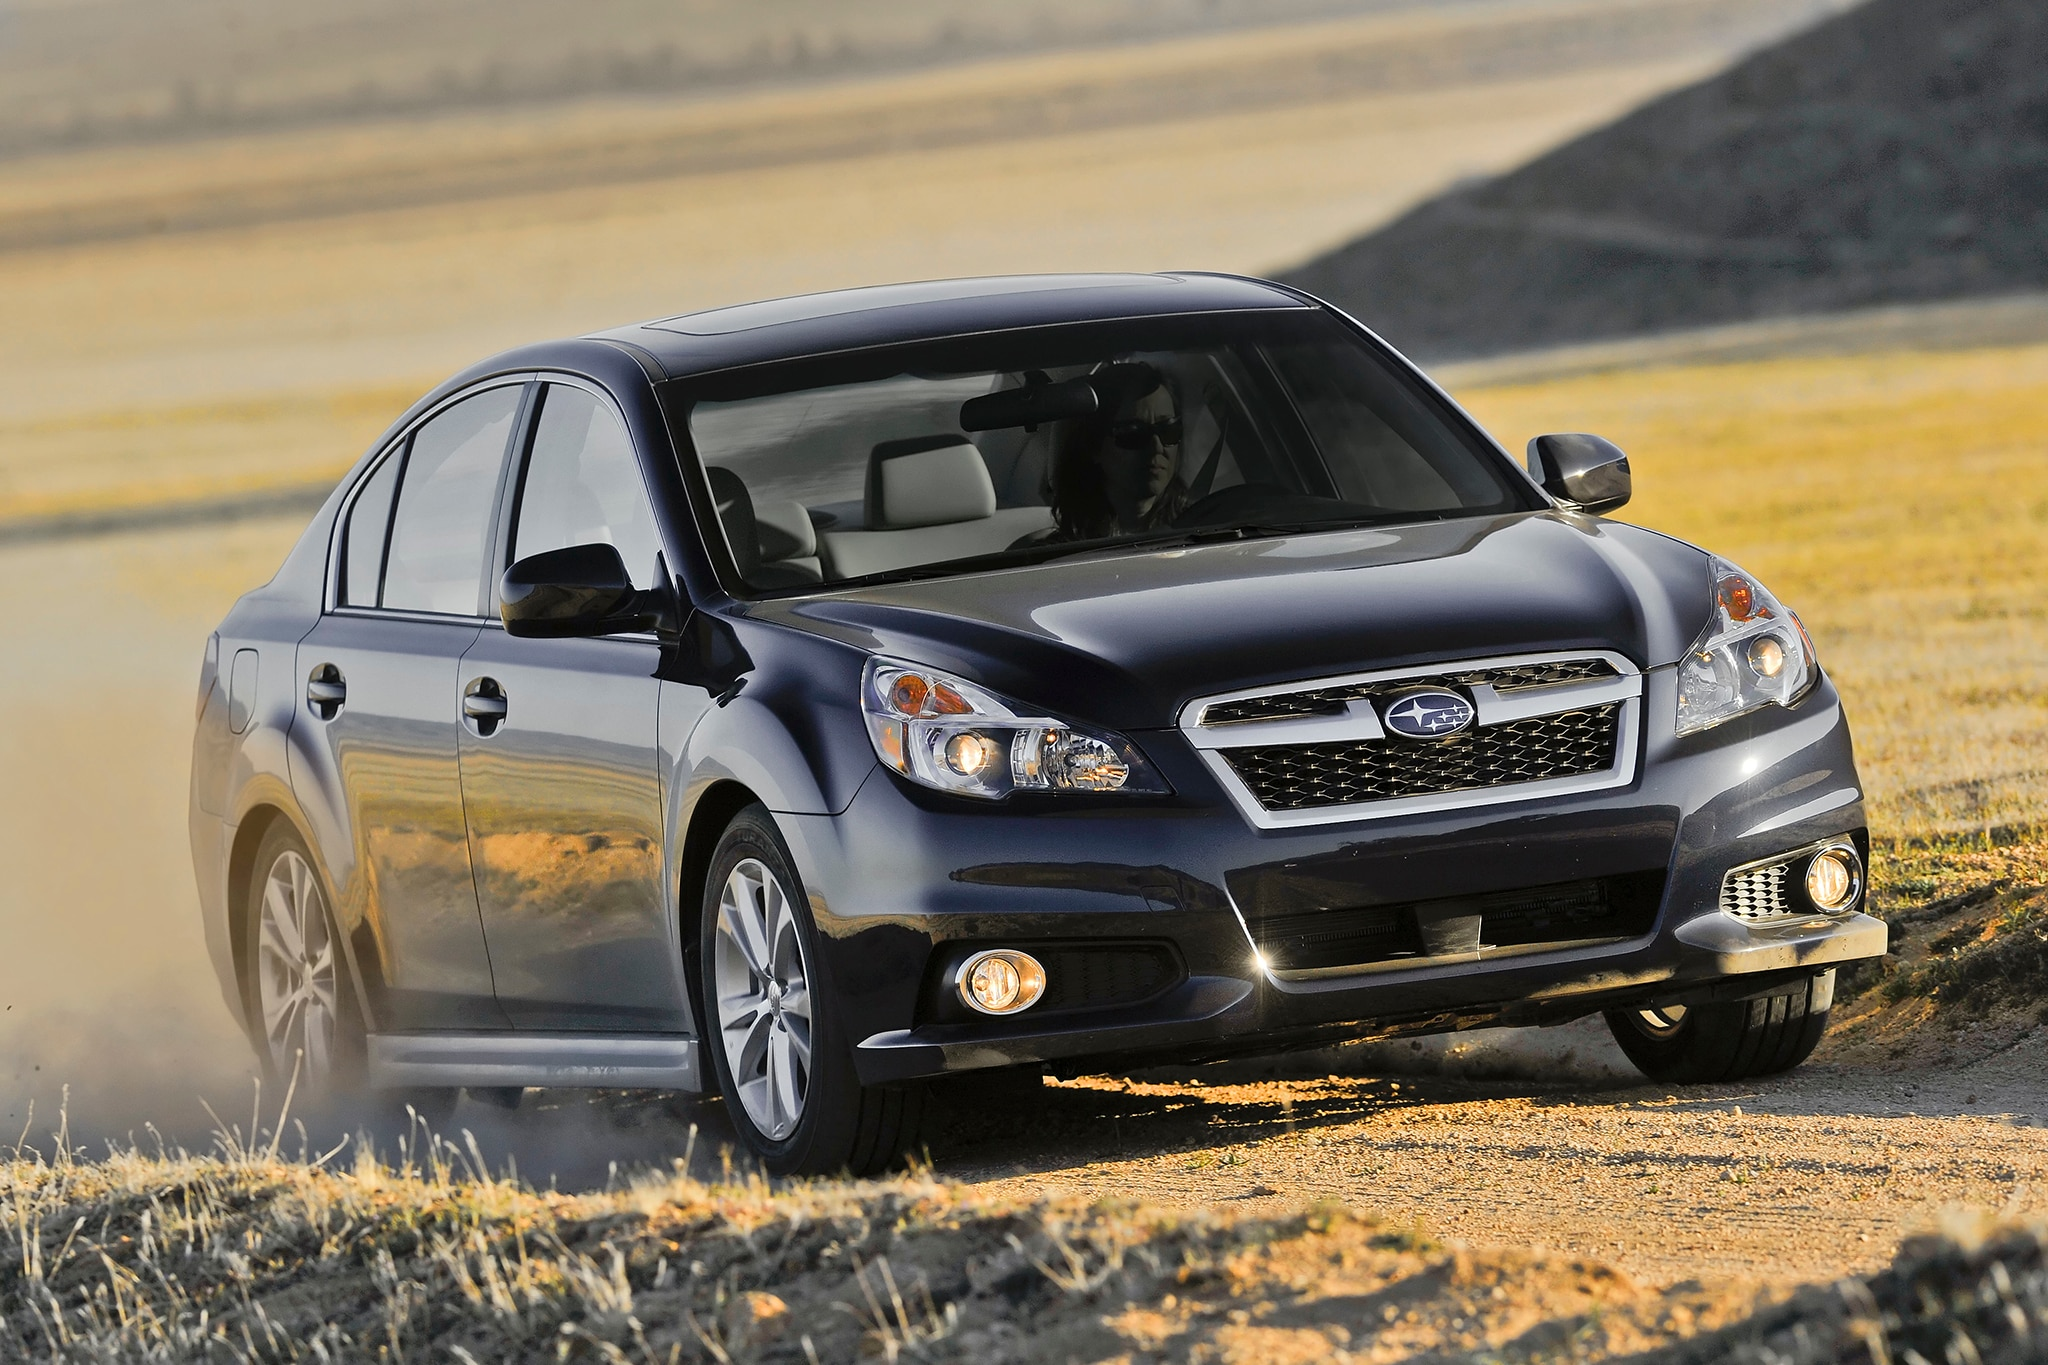 2014 Subaru Legacy Three Quarters In Motion Offroad1